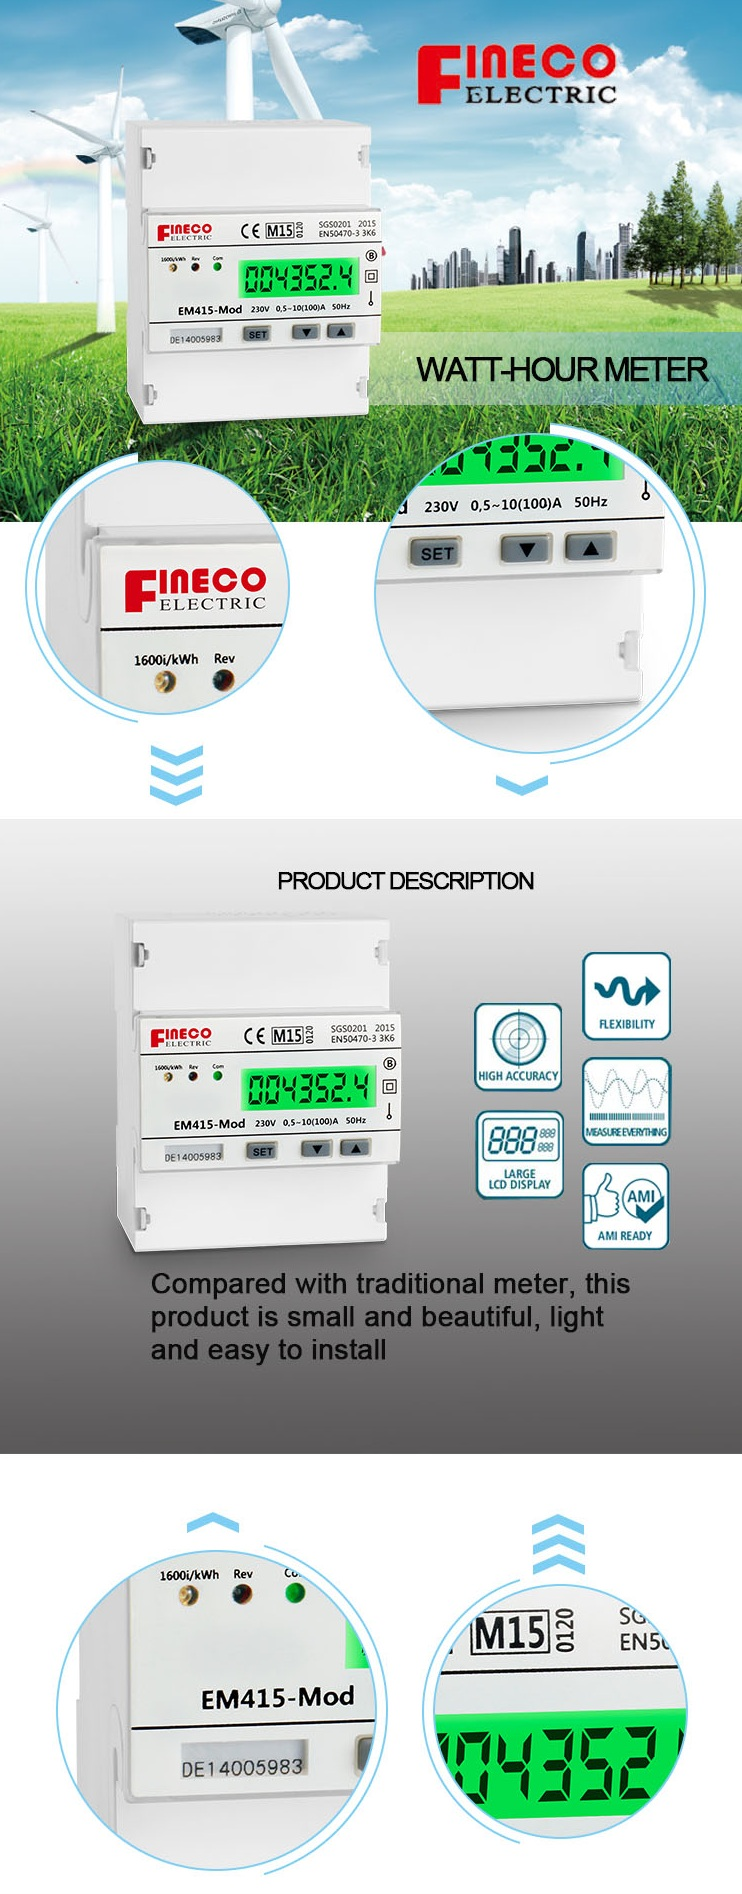 Em415 Mod 10100a Mid Approved Lcd Display Single Phase Din Rail Kwh Meter Wiring Diagram Mounted